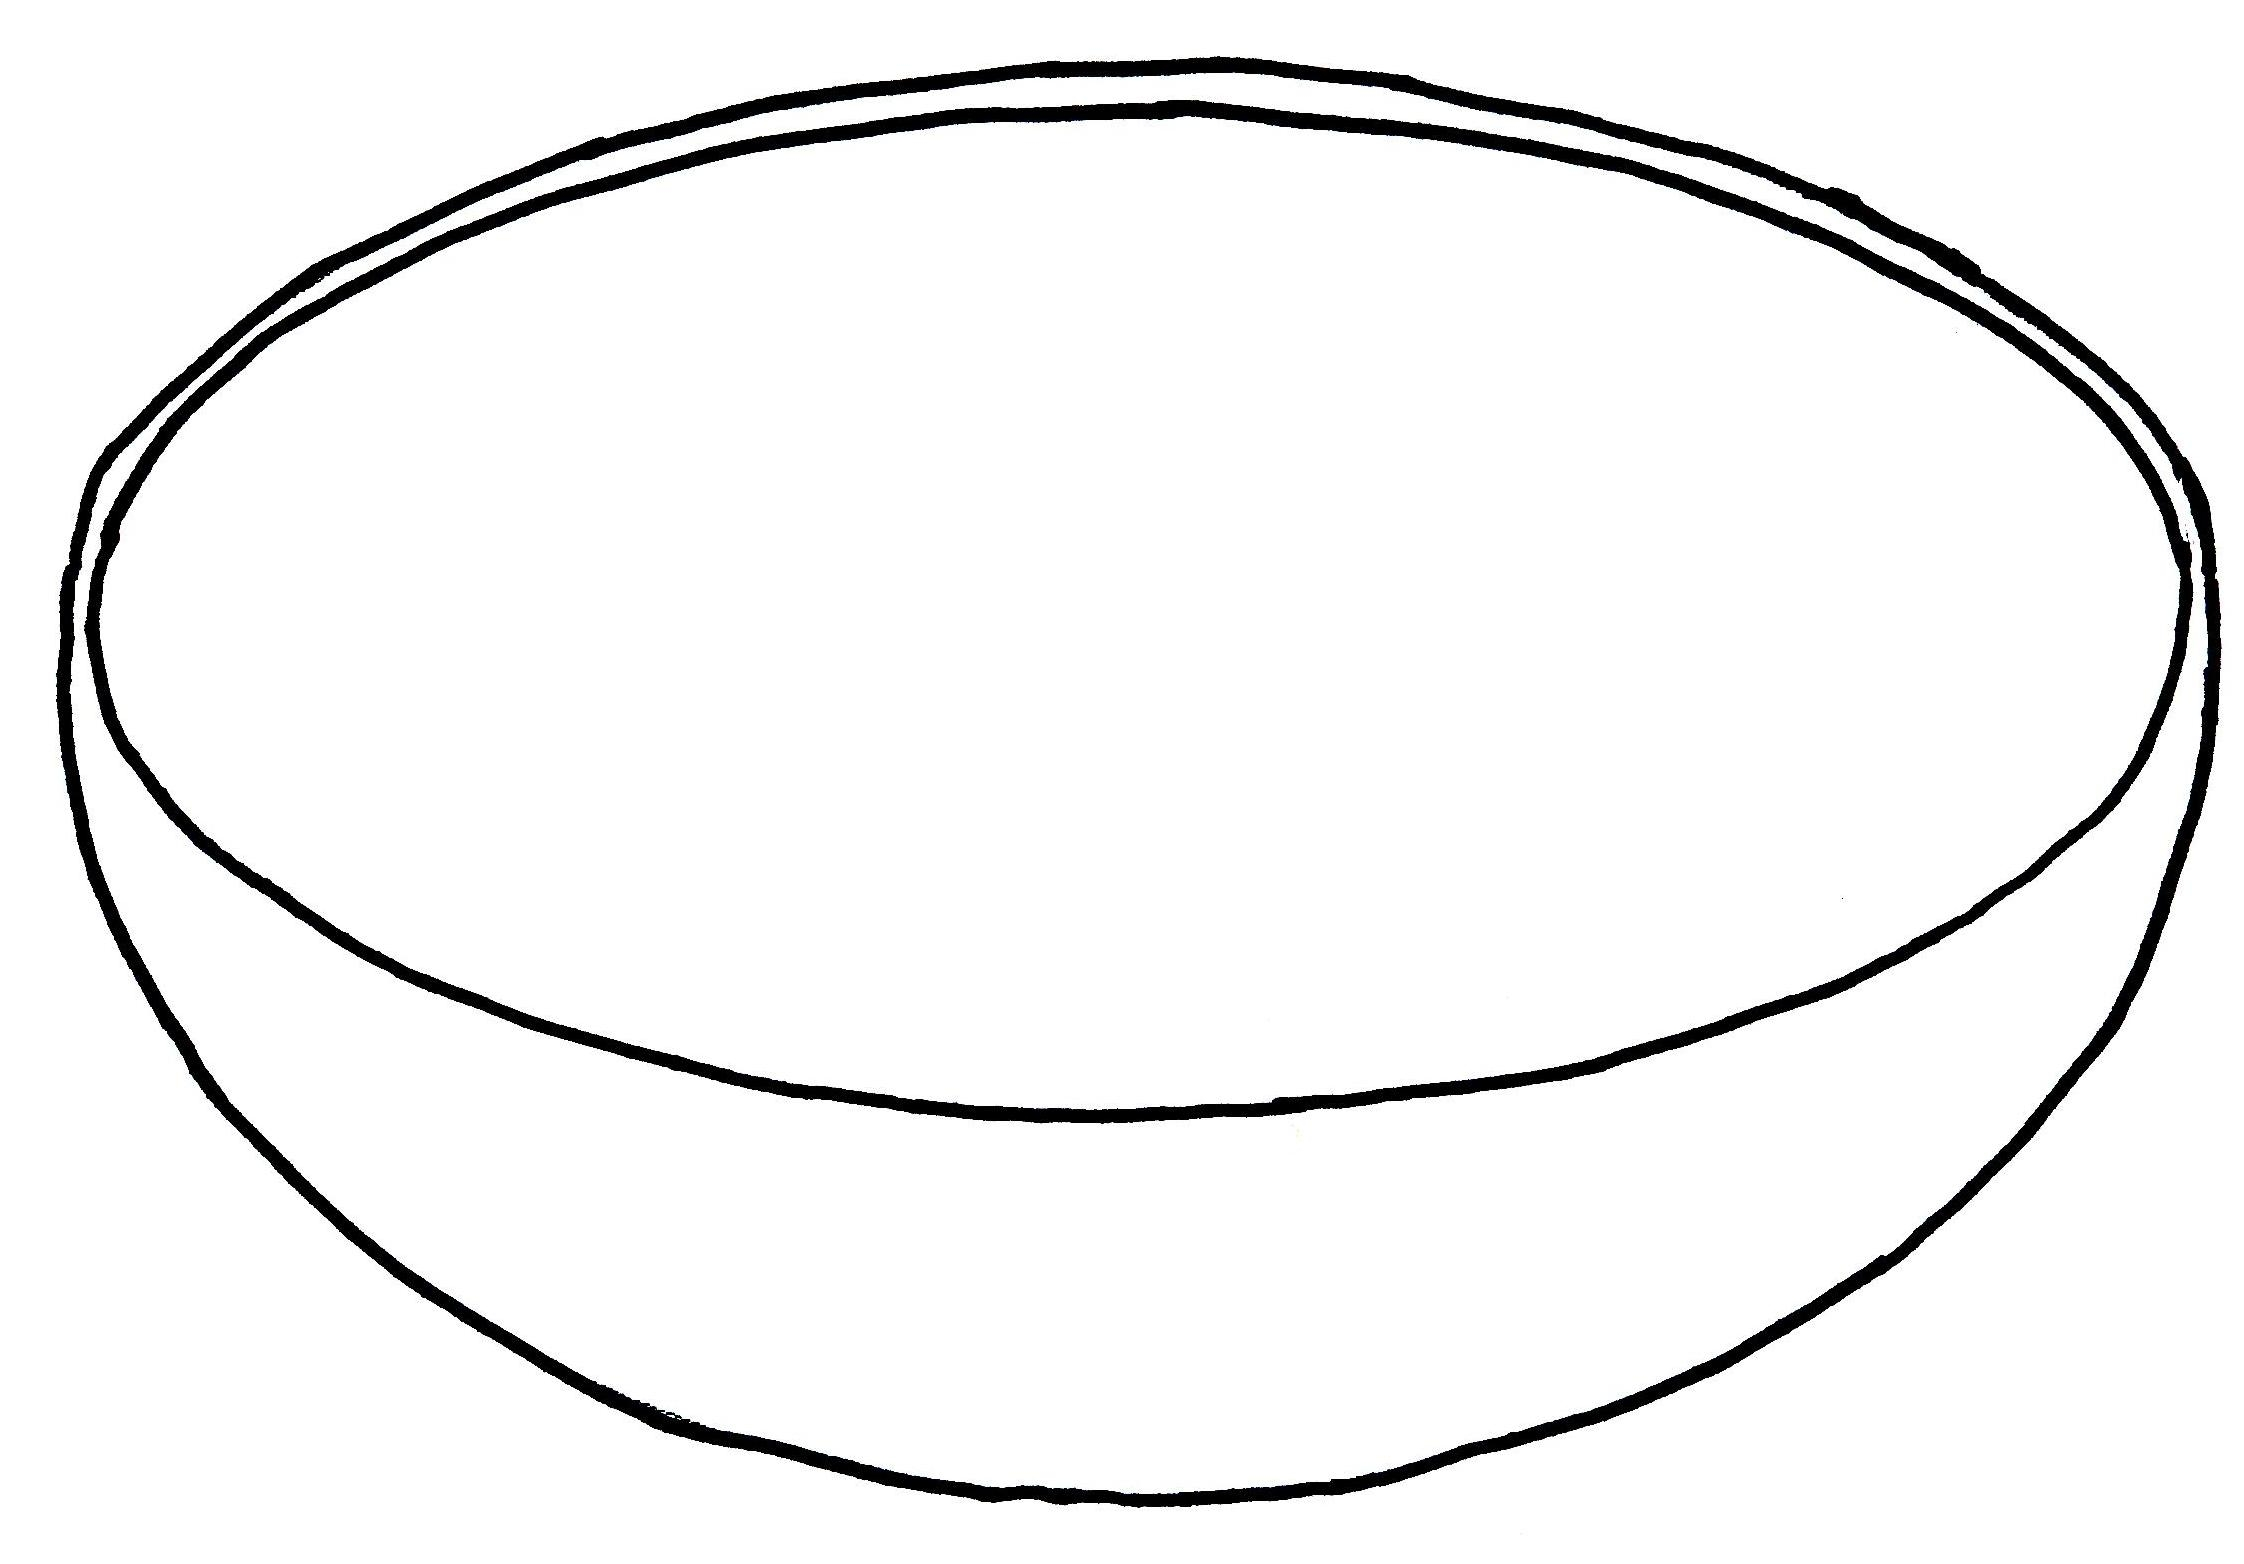 Empty Fruit Basket Clipart Black And White.